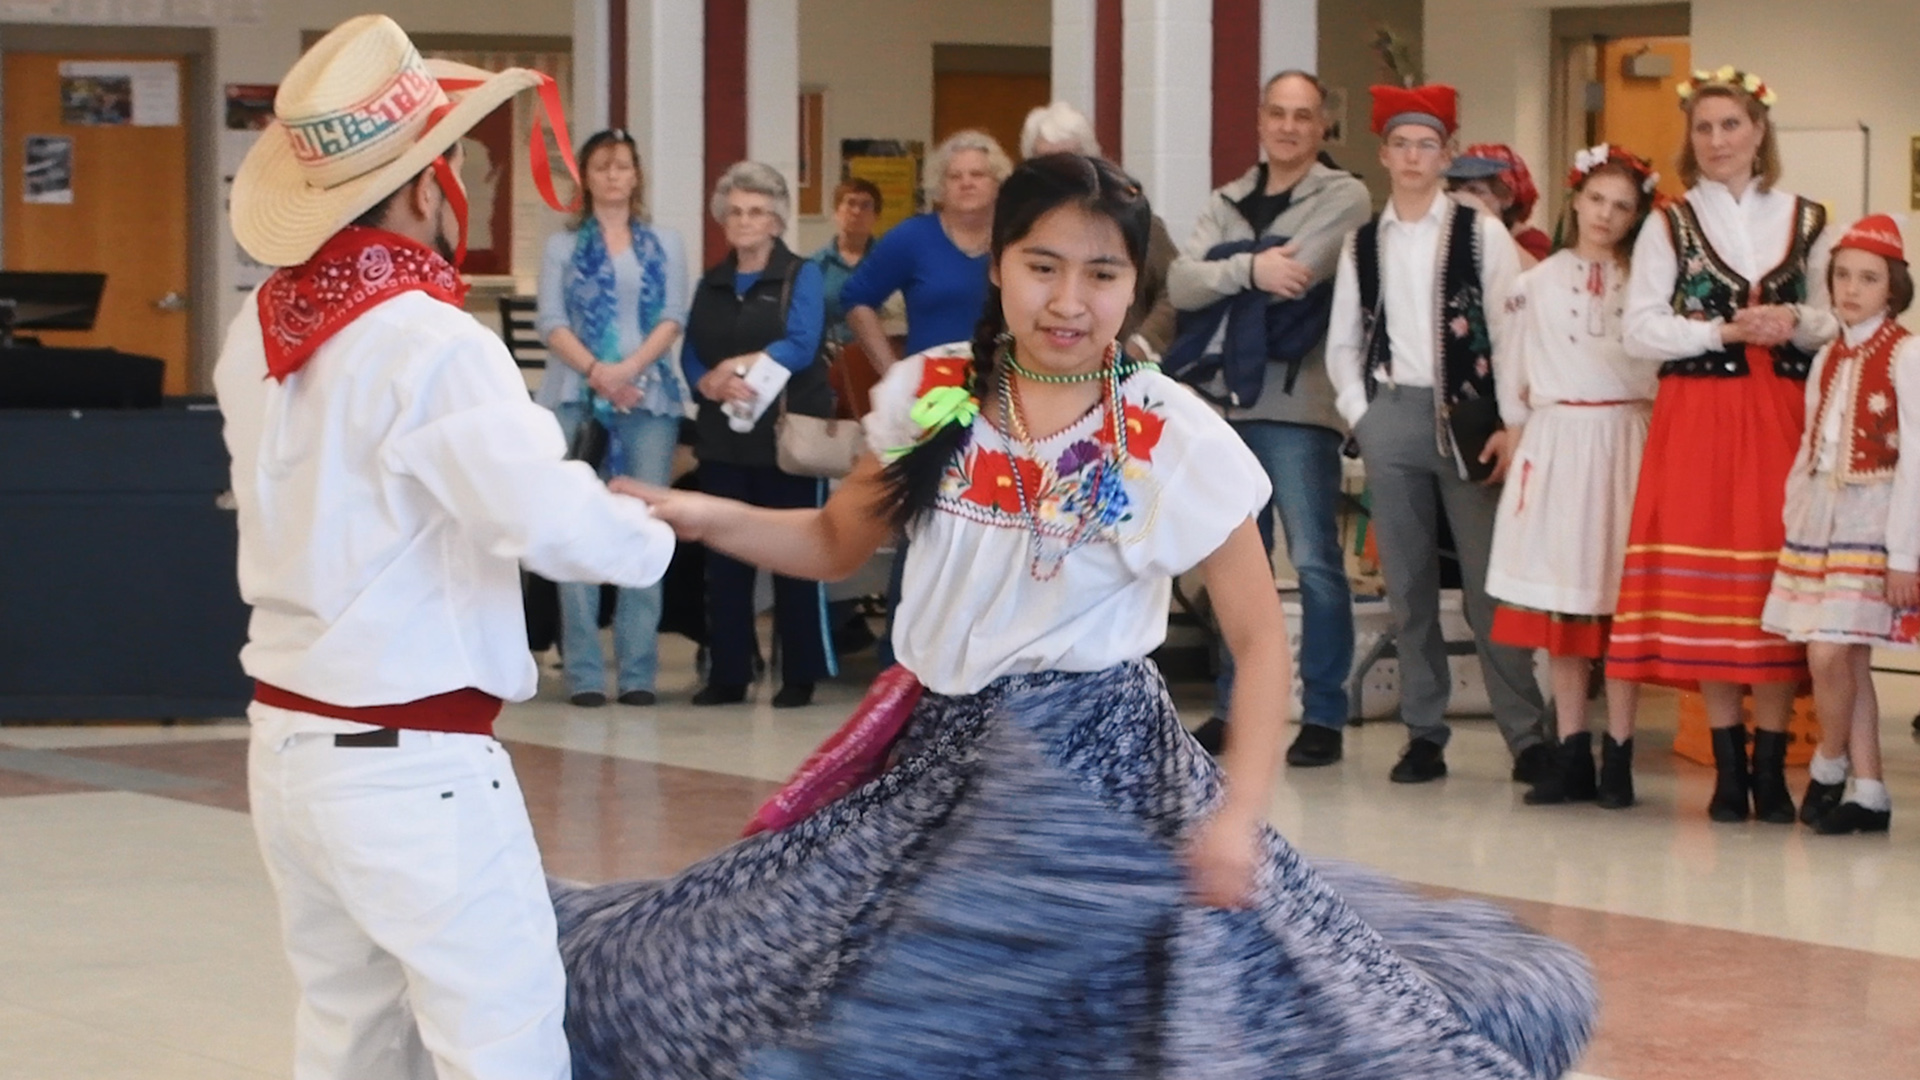 A young girl in colorful dress dances with a male partner.